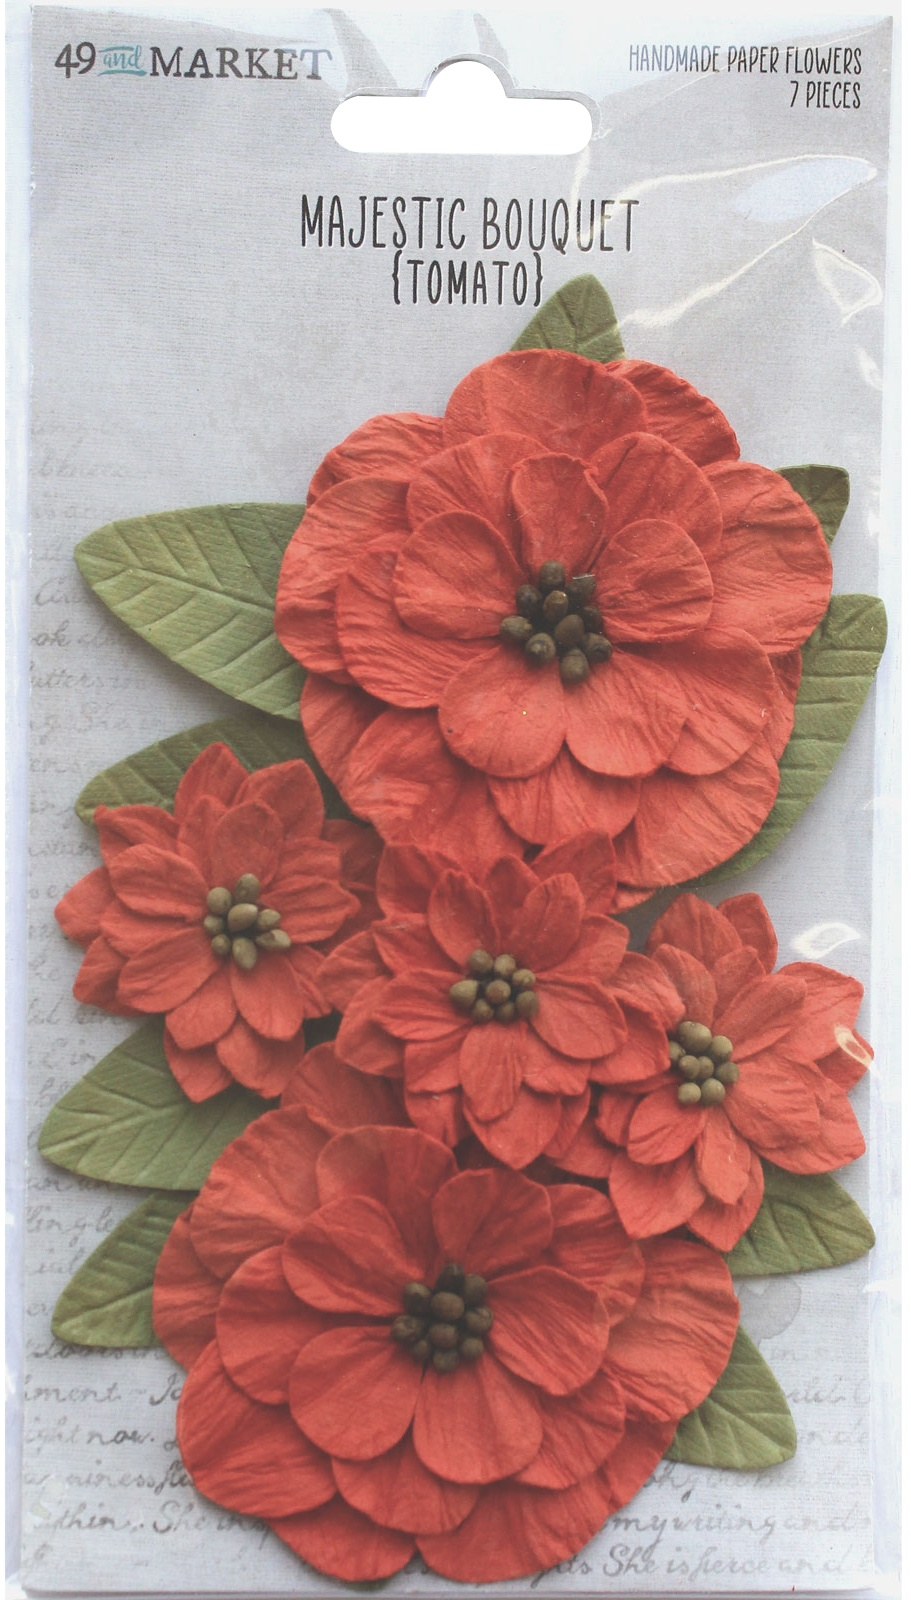 49 And Market Majestic Bouquet Paper Flowers - Tomato